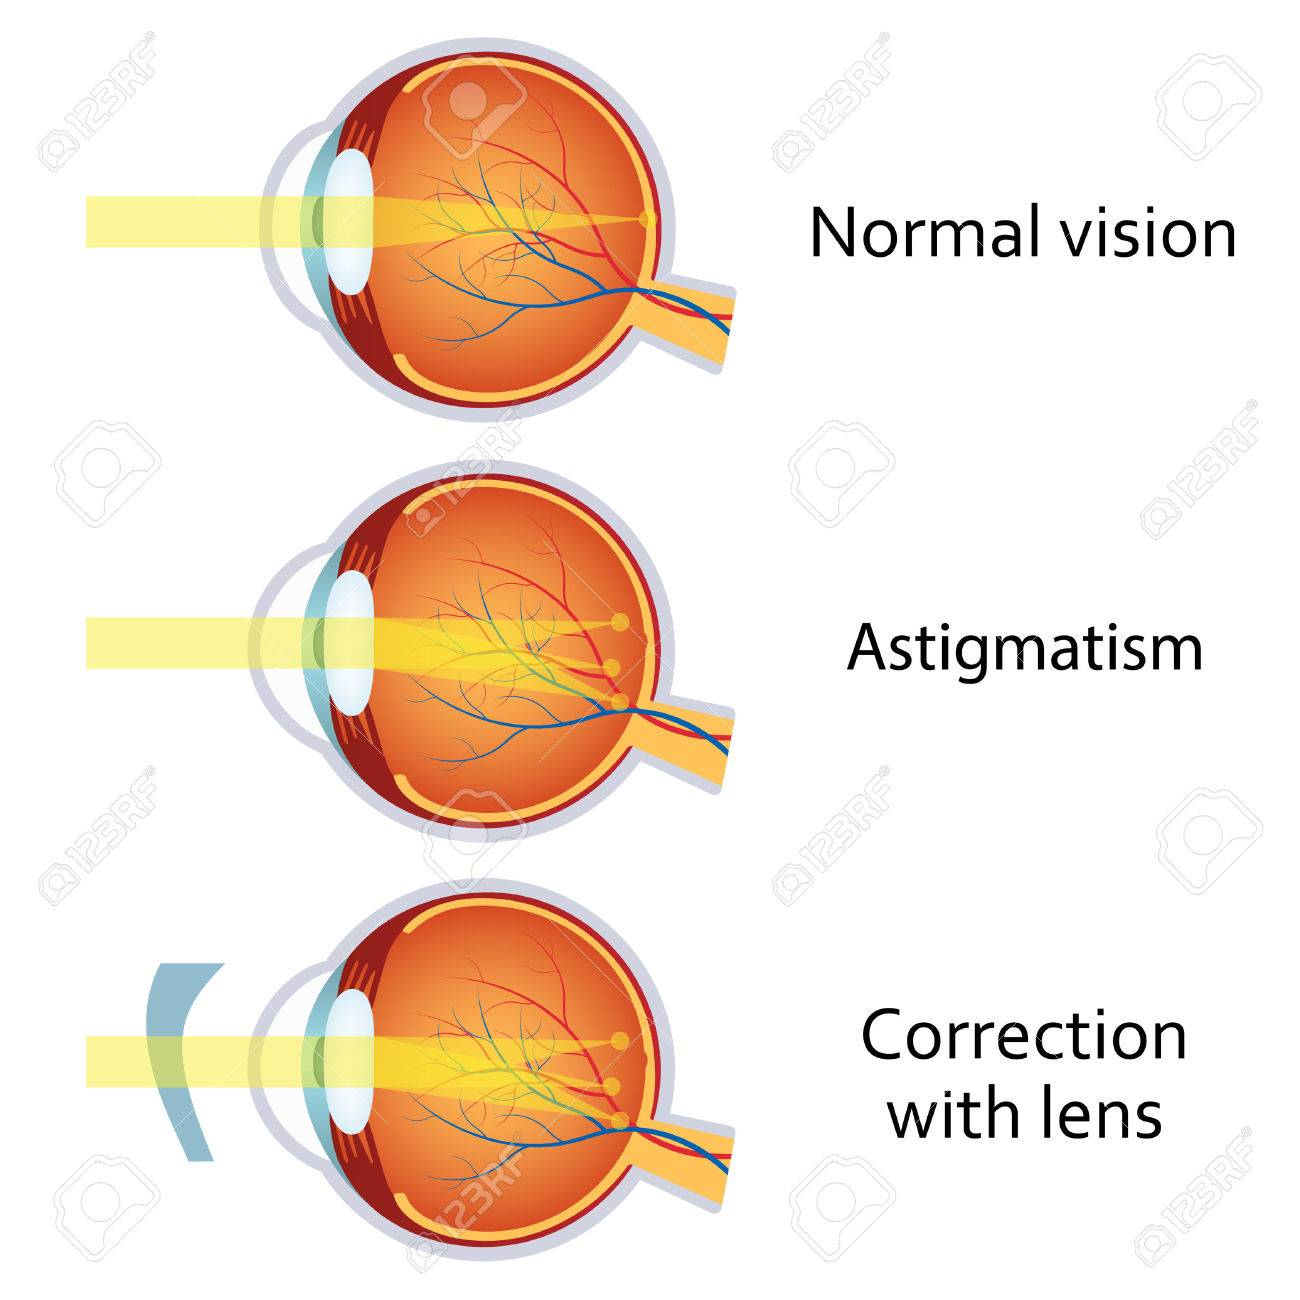 Eye Lens Diagram Astigmatism - House Wiring Diagram Symbols •